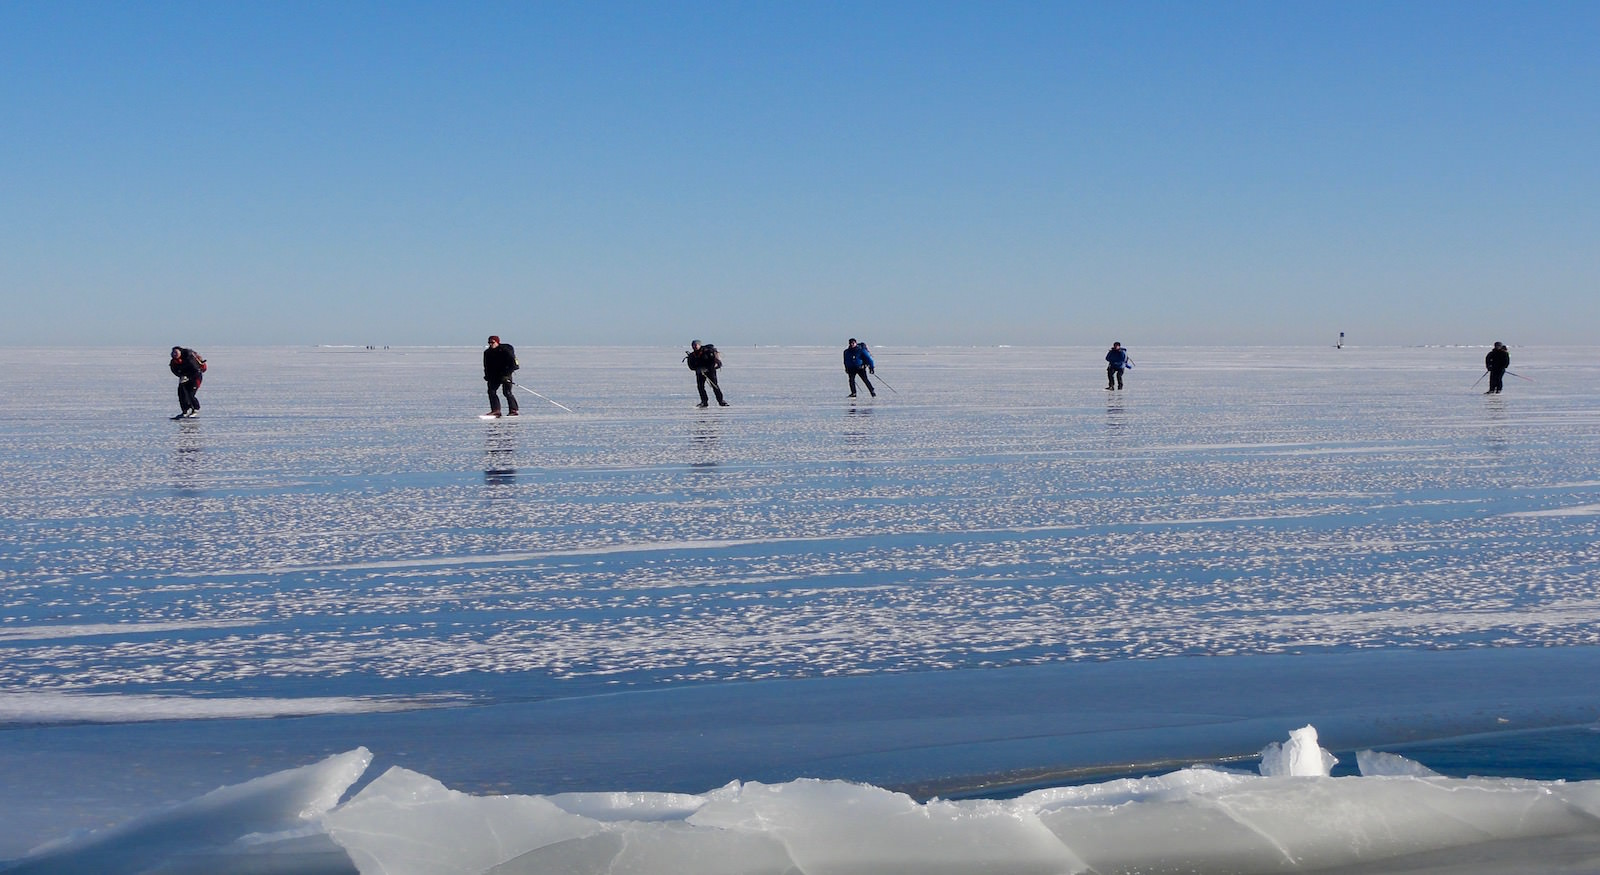 Ice-skating on the Baltic Sea, Finland